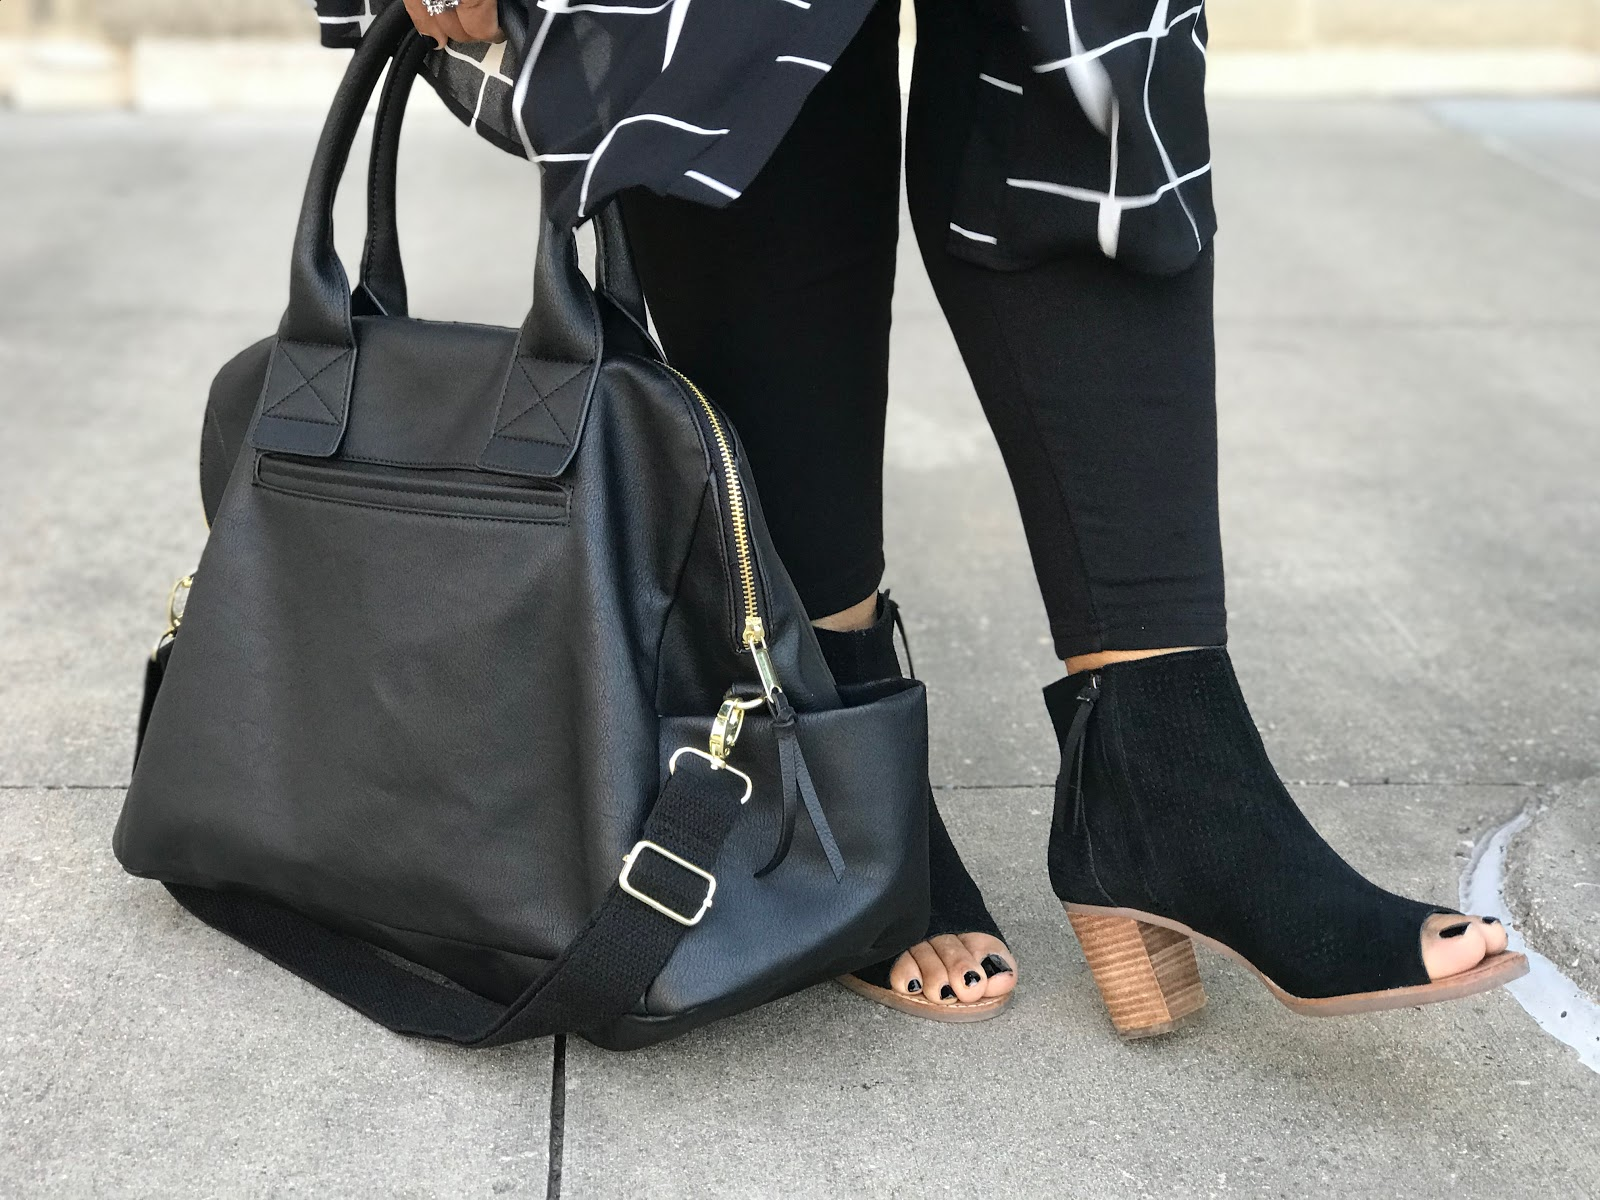 Image: Tangie Bell sharing her shoes, and quick OOTD